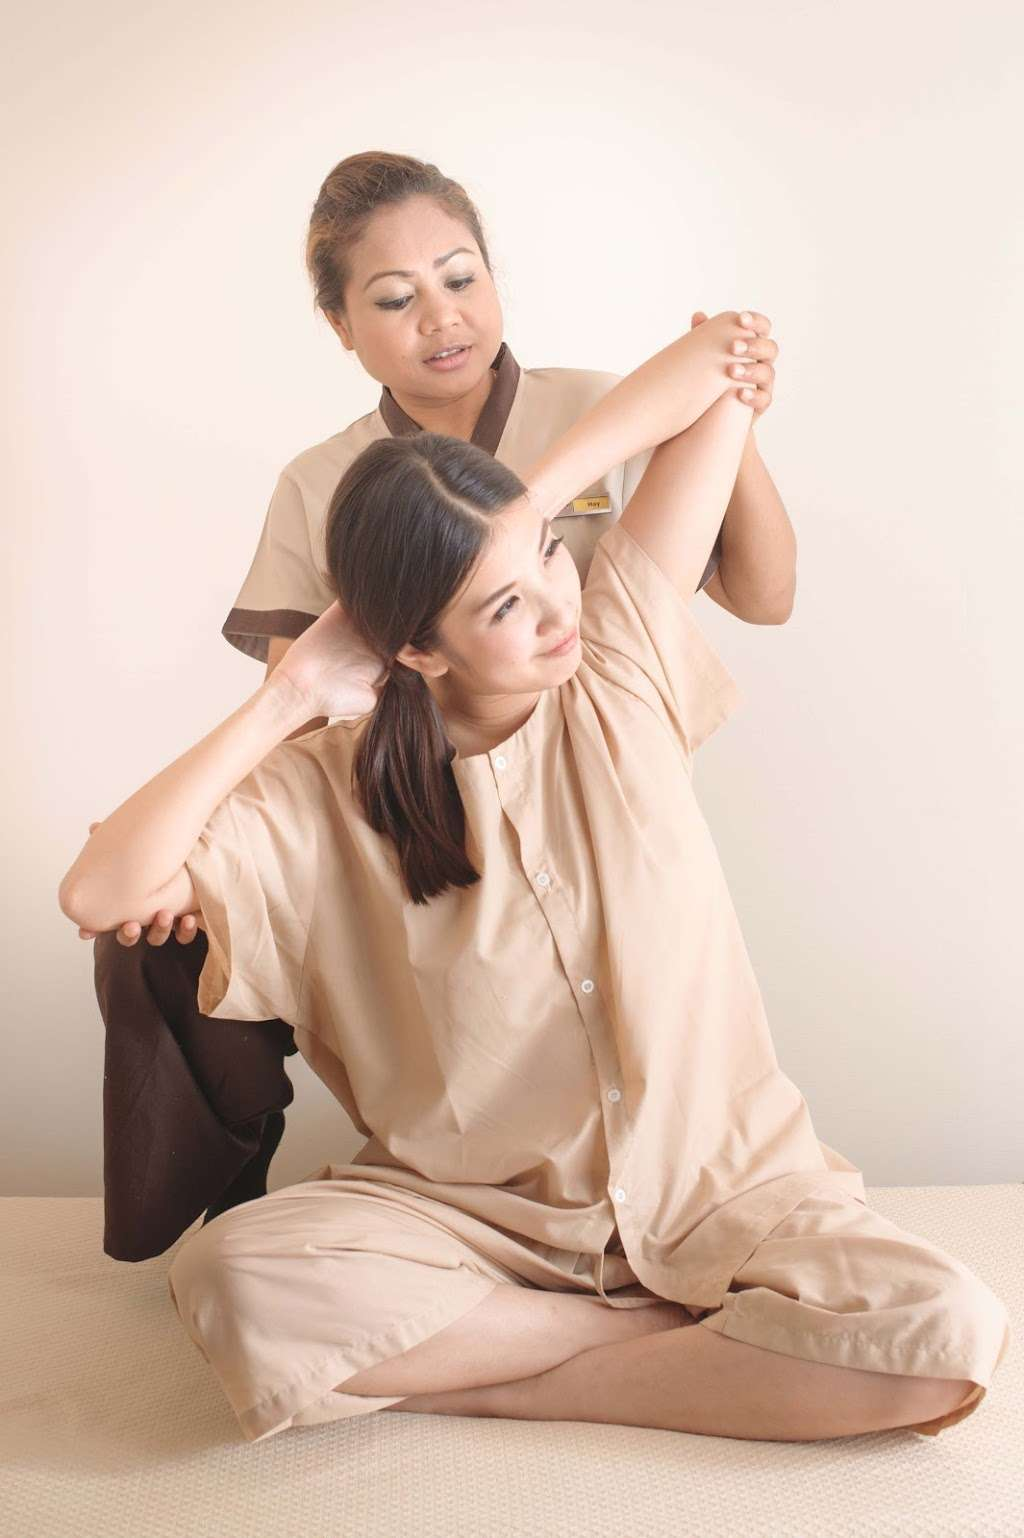 China Spring Massage - spa  | Photo 4 of 9 | Address: 11385 Poway Rd #102, San Diego, CA 92128, USA | Phone: (858) 663-5718